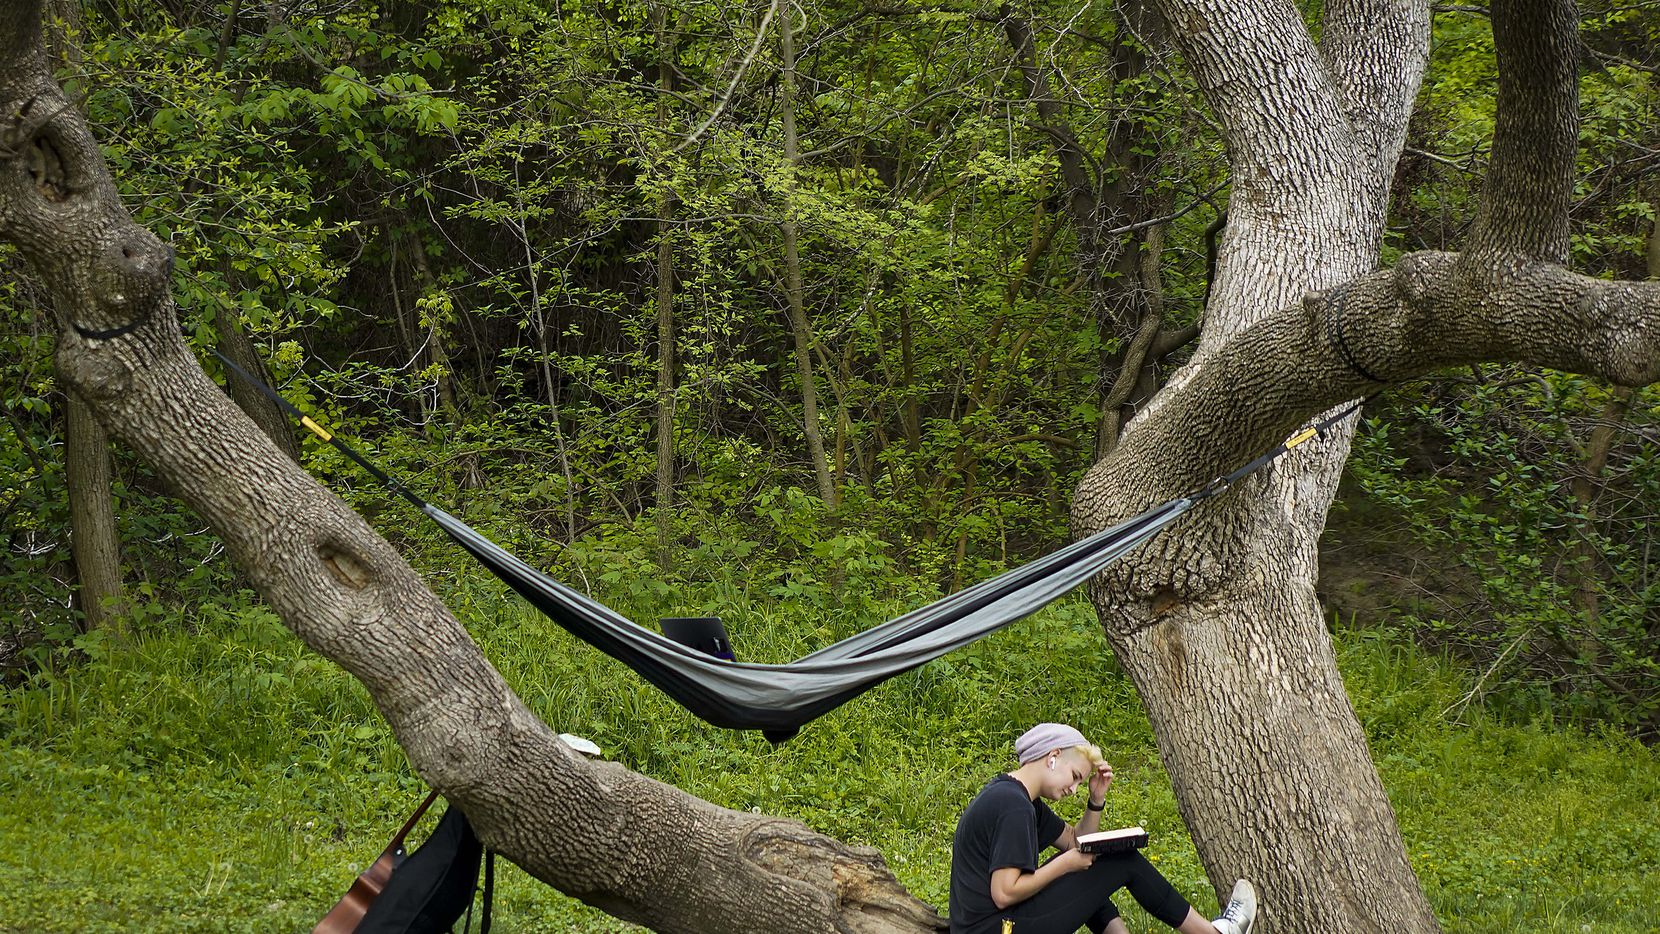 With a book, a hammock, a musical instrument, and a beverage, a woman enjoys time outdoors in Prairie Creek Park on Sunday, March 29, 2020, in Richardson, Texas.